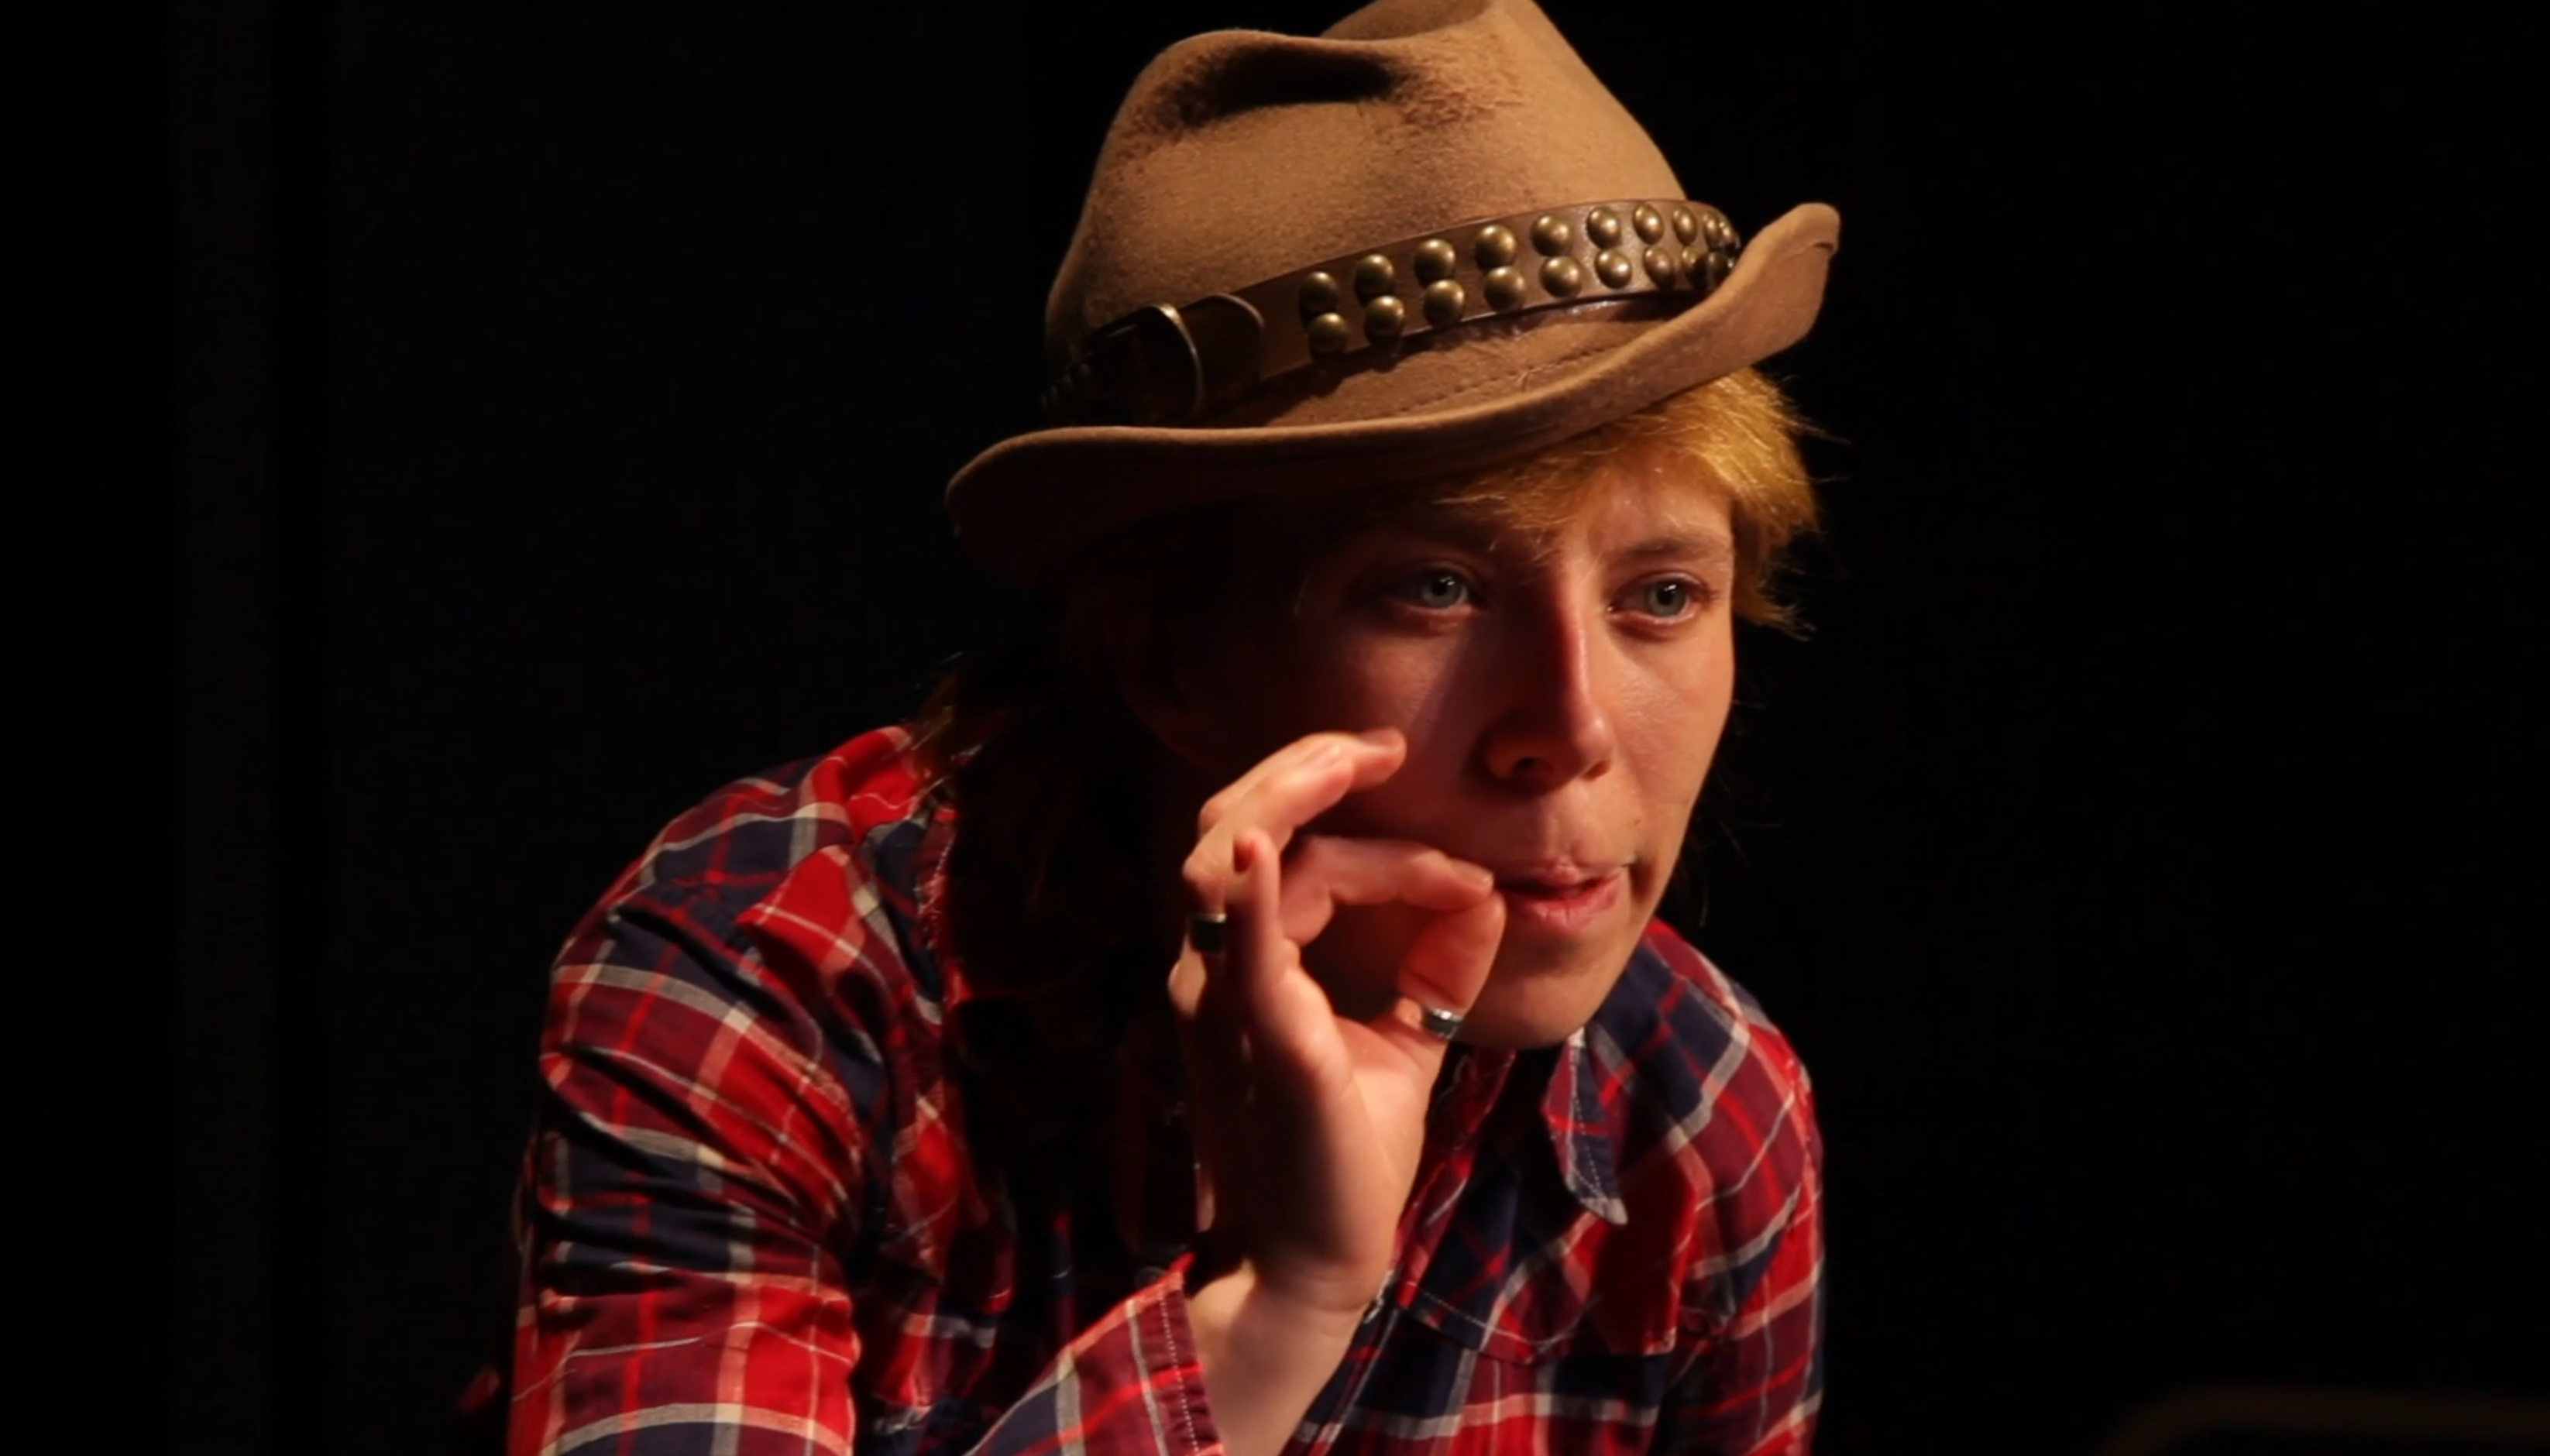 A person with cowboy hat and red and black plaid shirt imitates smoking a cigarette